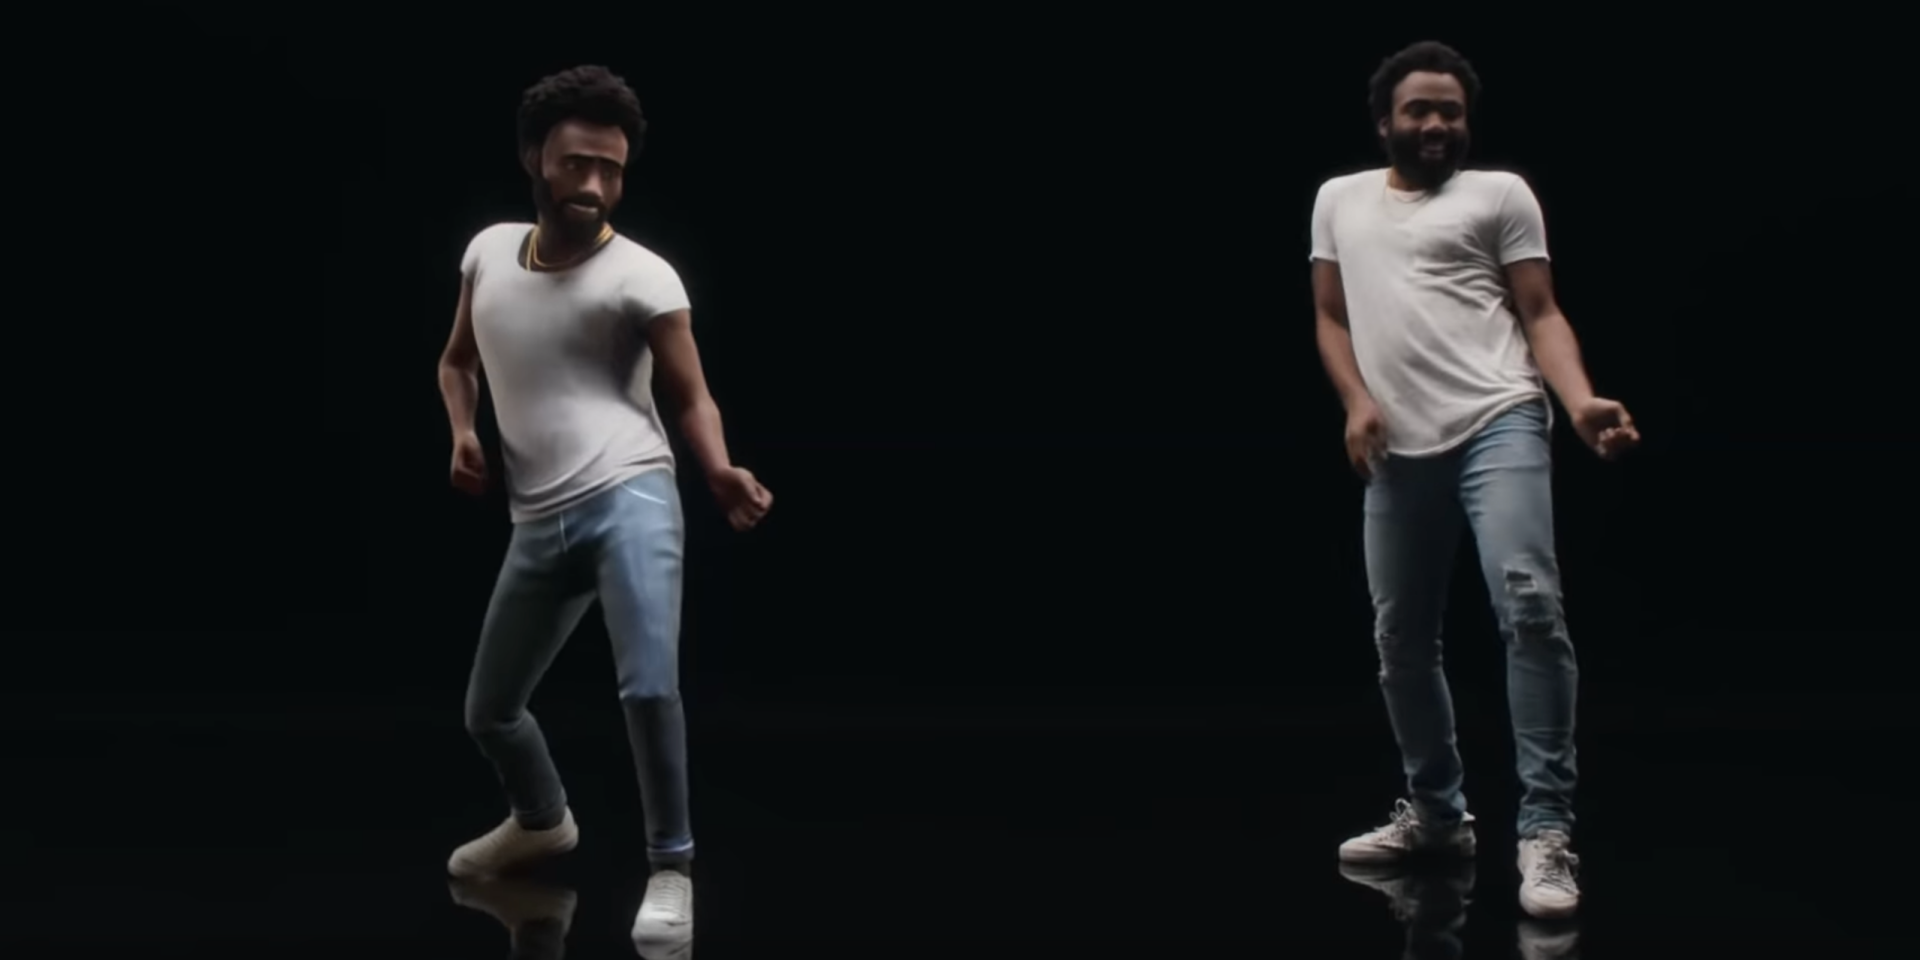 Childish Gambino shares snippet of new song 'Human Sacrifice' in Google Ad